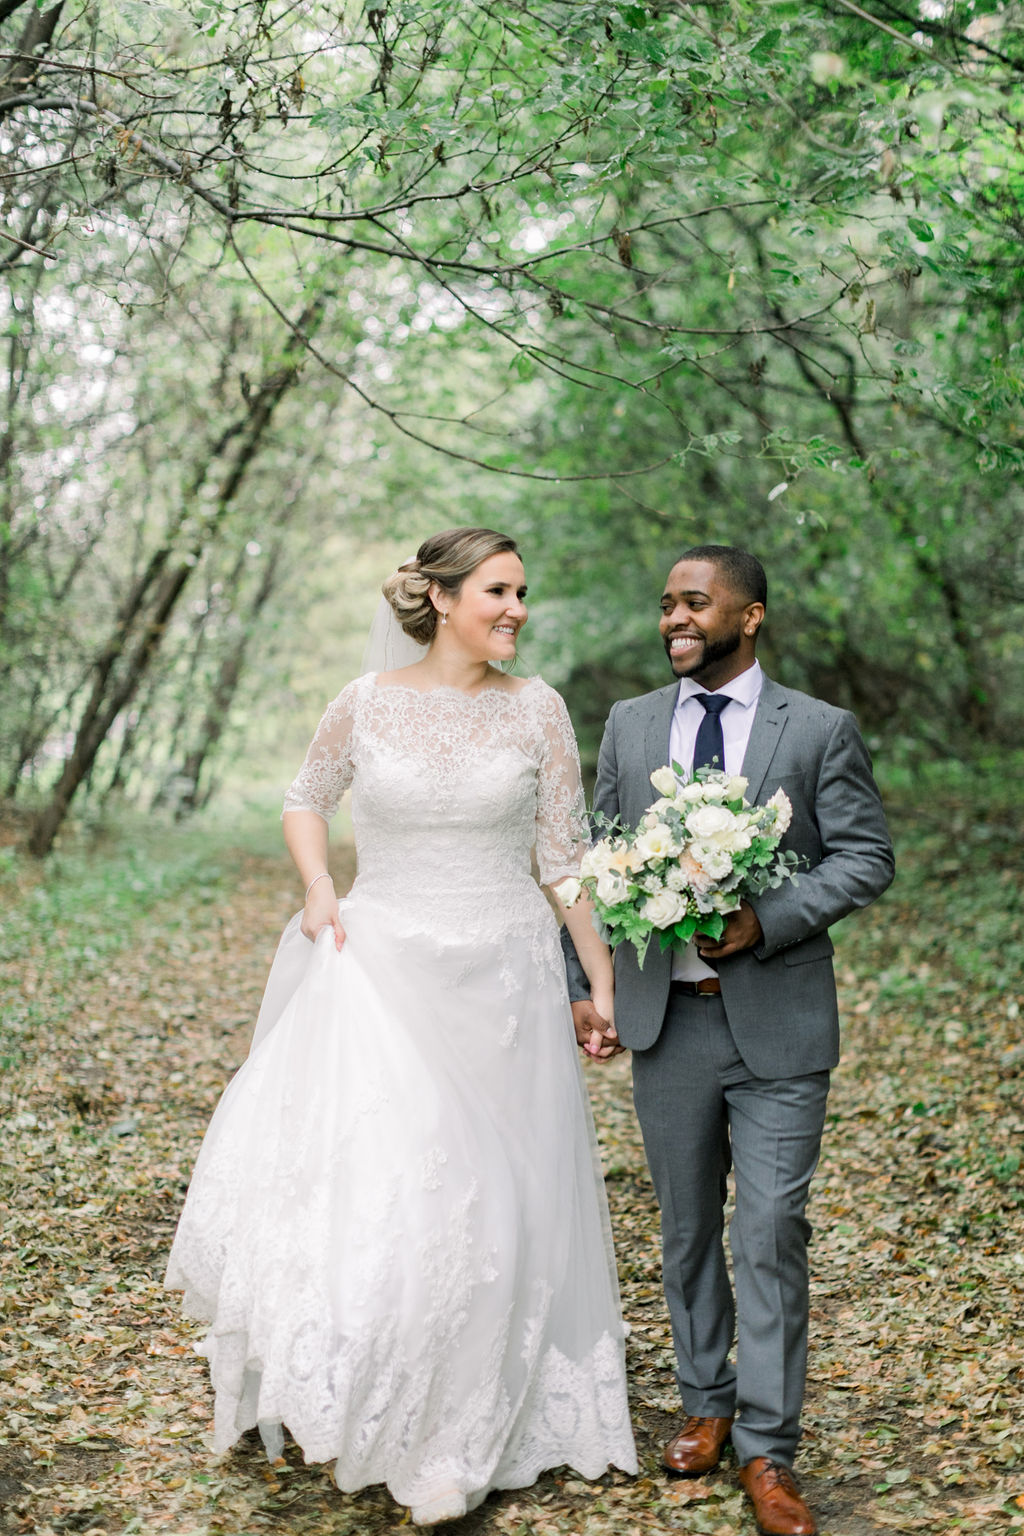 White and Blush October Real Wedding // spunkysapphire.com/blog